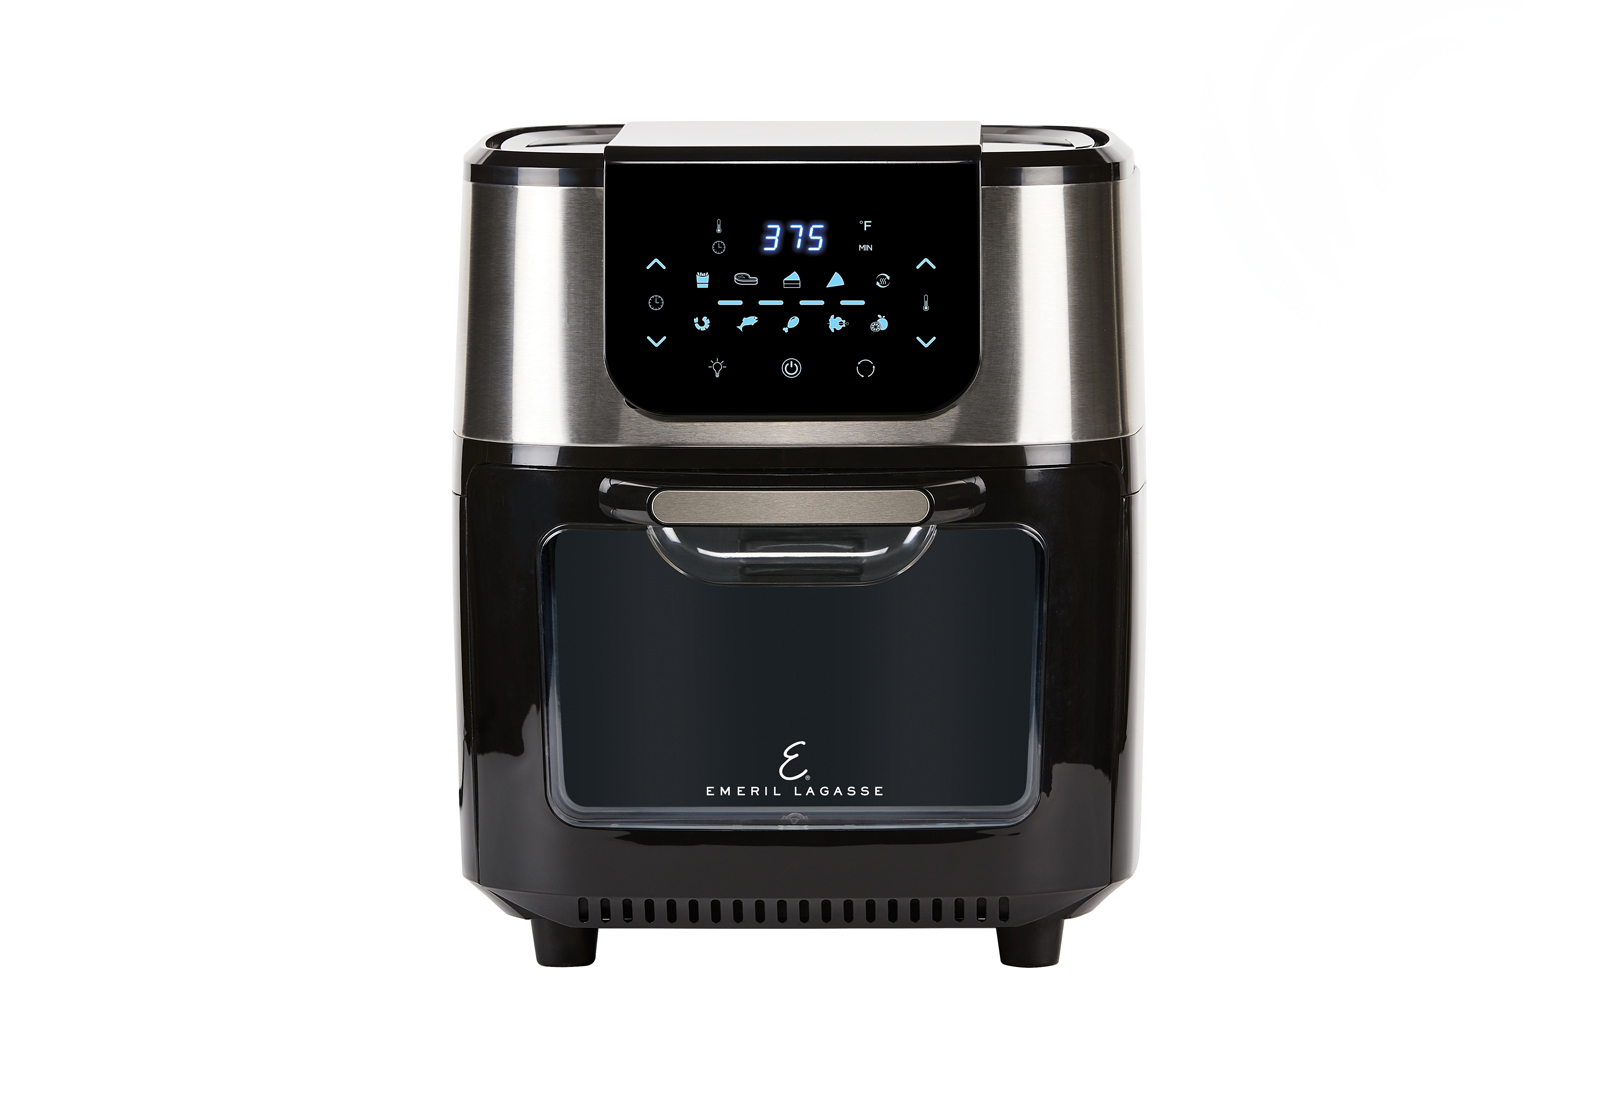 Emeril Lagasse AirFryer Ovens AirFryer Pro Product Image